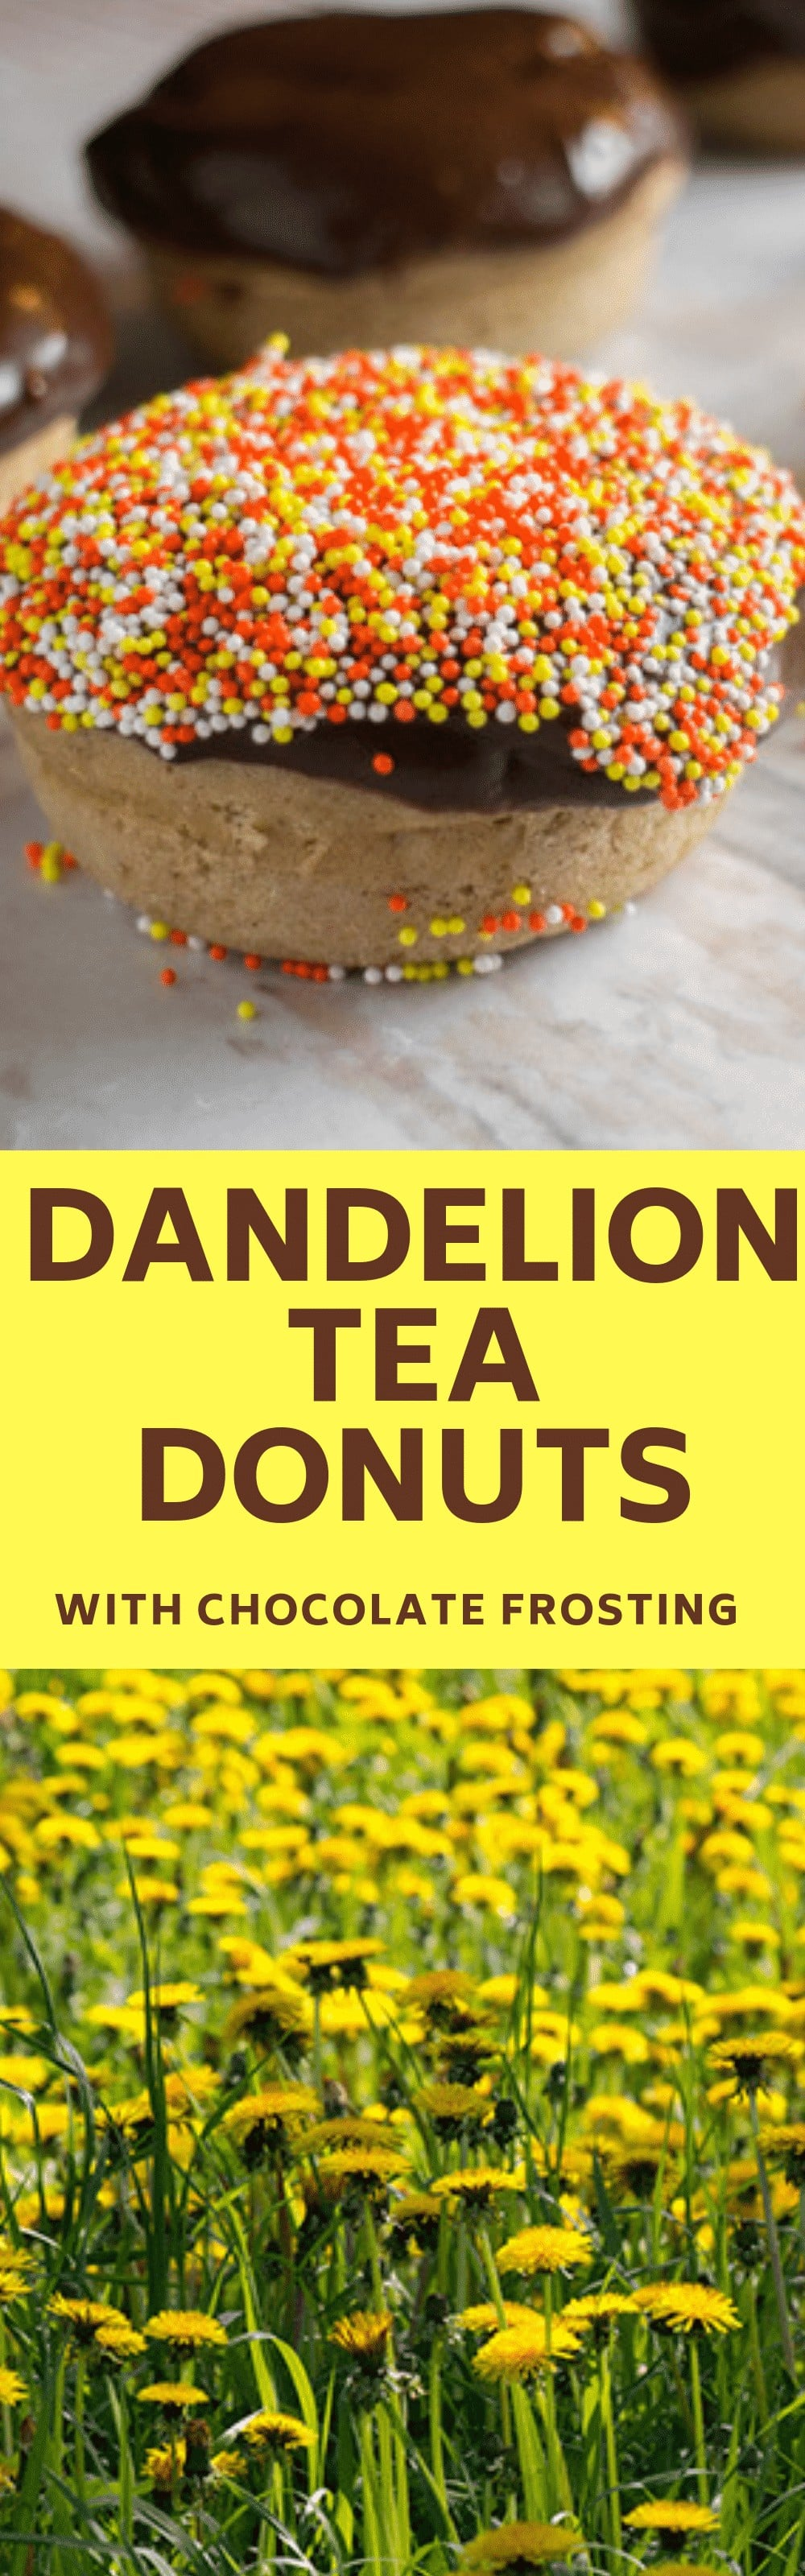 Dandelion Tea Donuts With Chocolate Frosting recipe. Dandelion tea is filled with healthy benefits so enjoy these donuts for breakfast or dessert. Includes a dairy free donut recipe too.